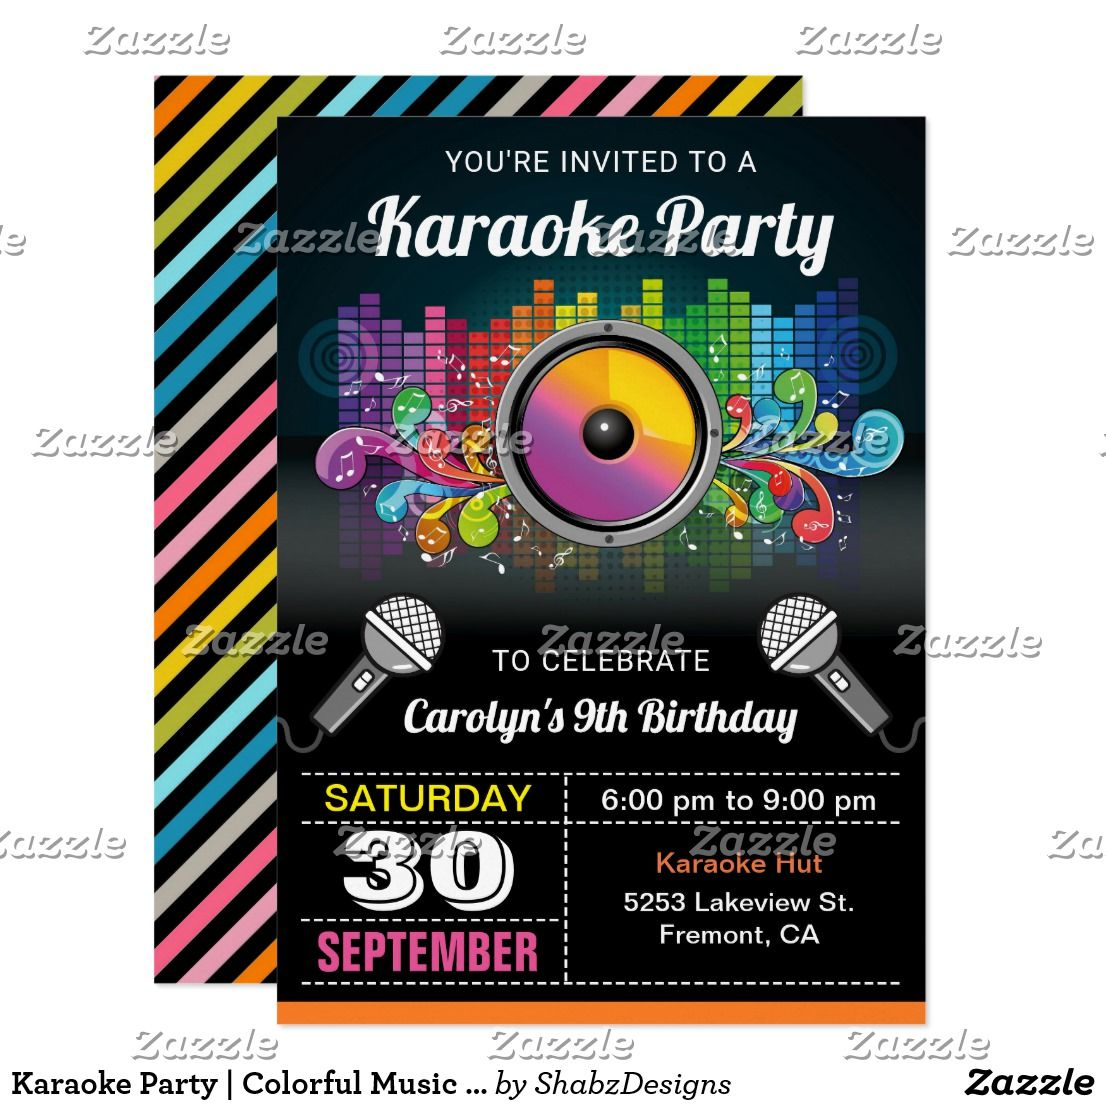 Karaoke Party | Colorful Music Birthday Invitation | Karaoke party ...